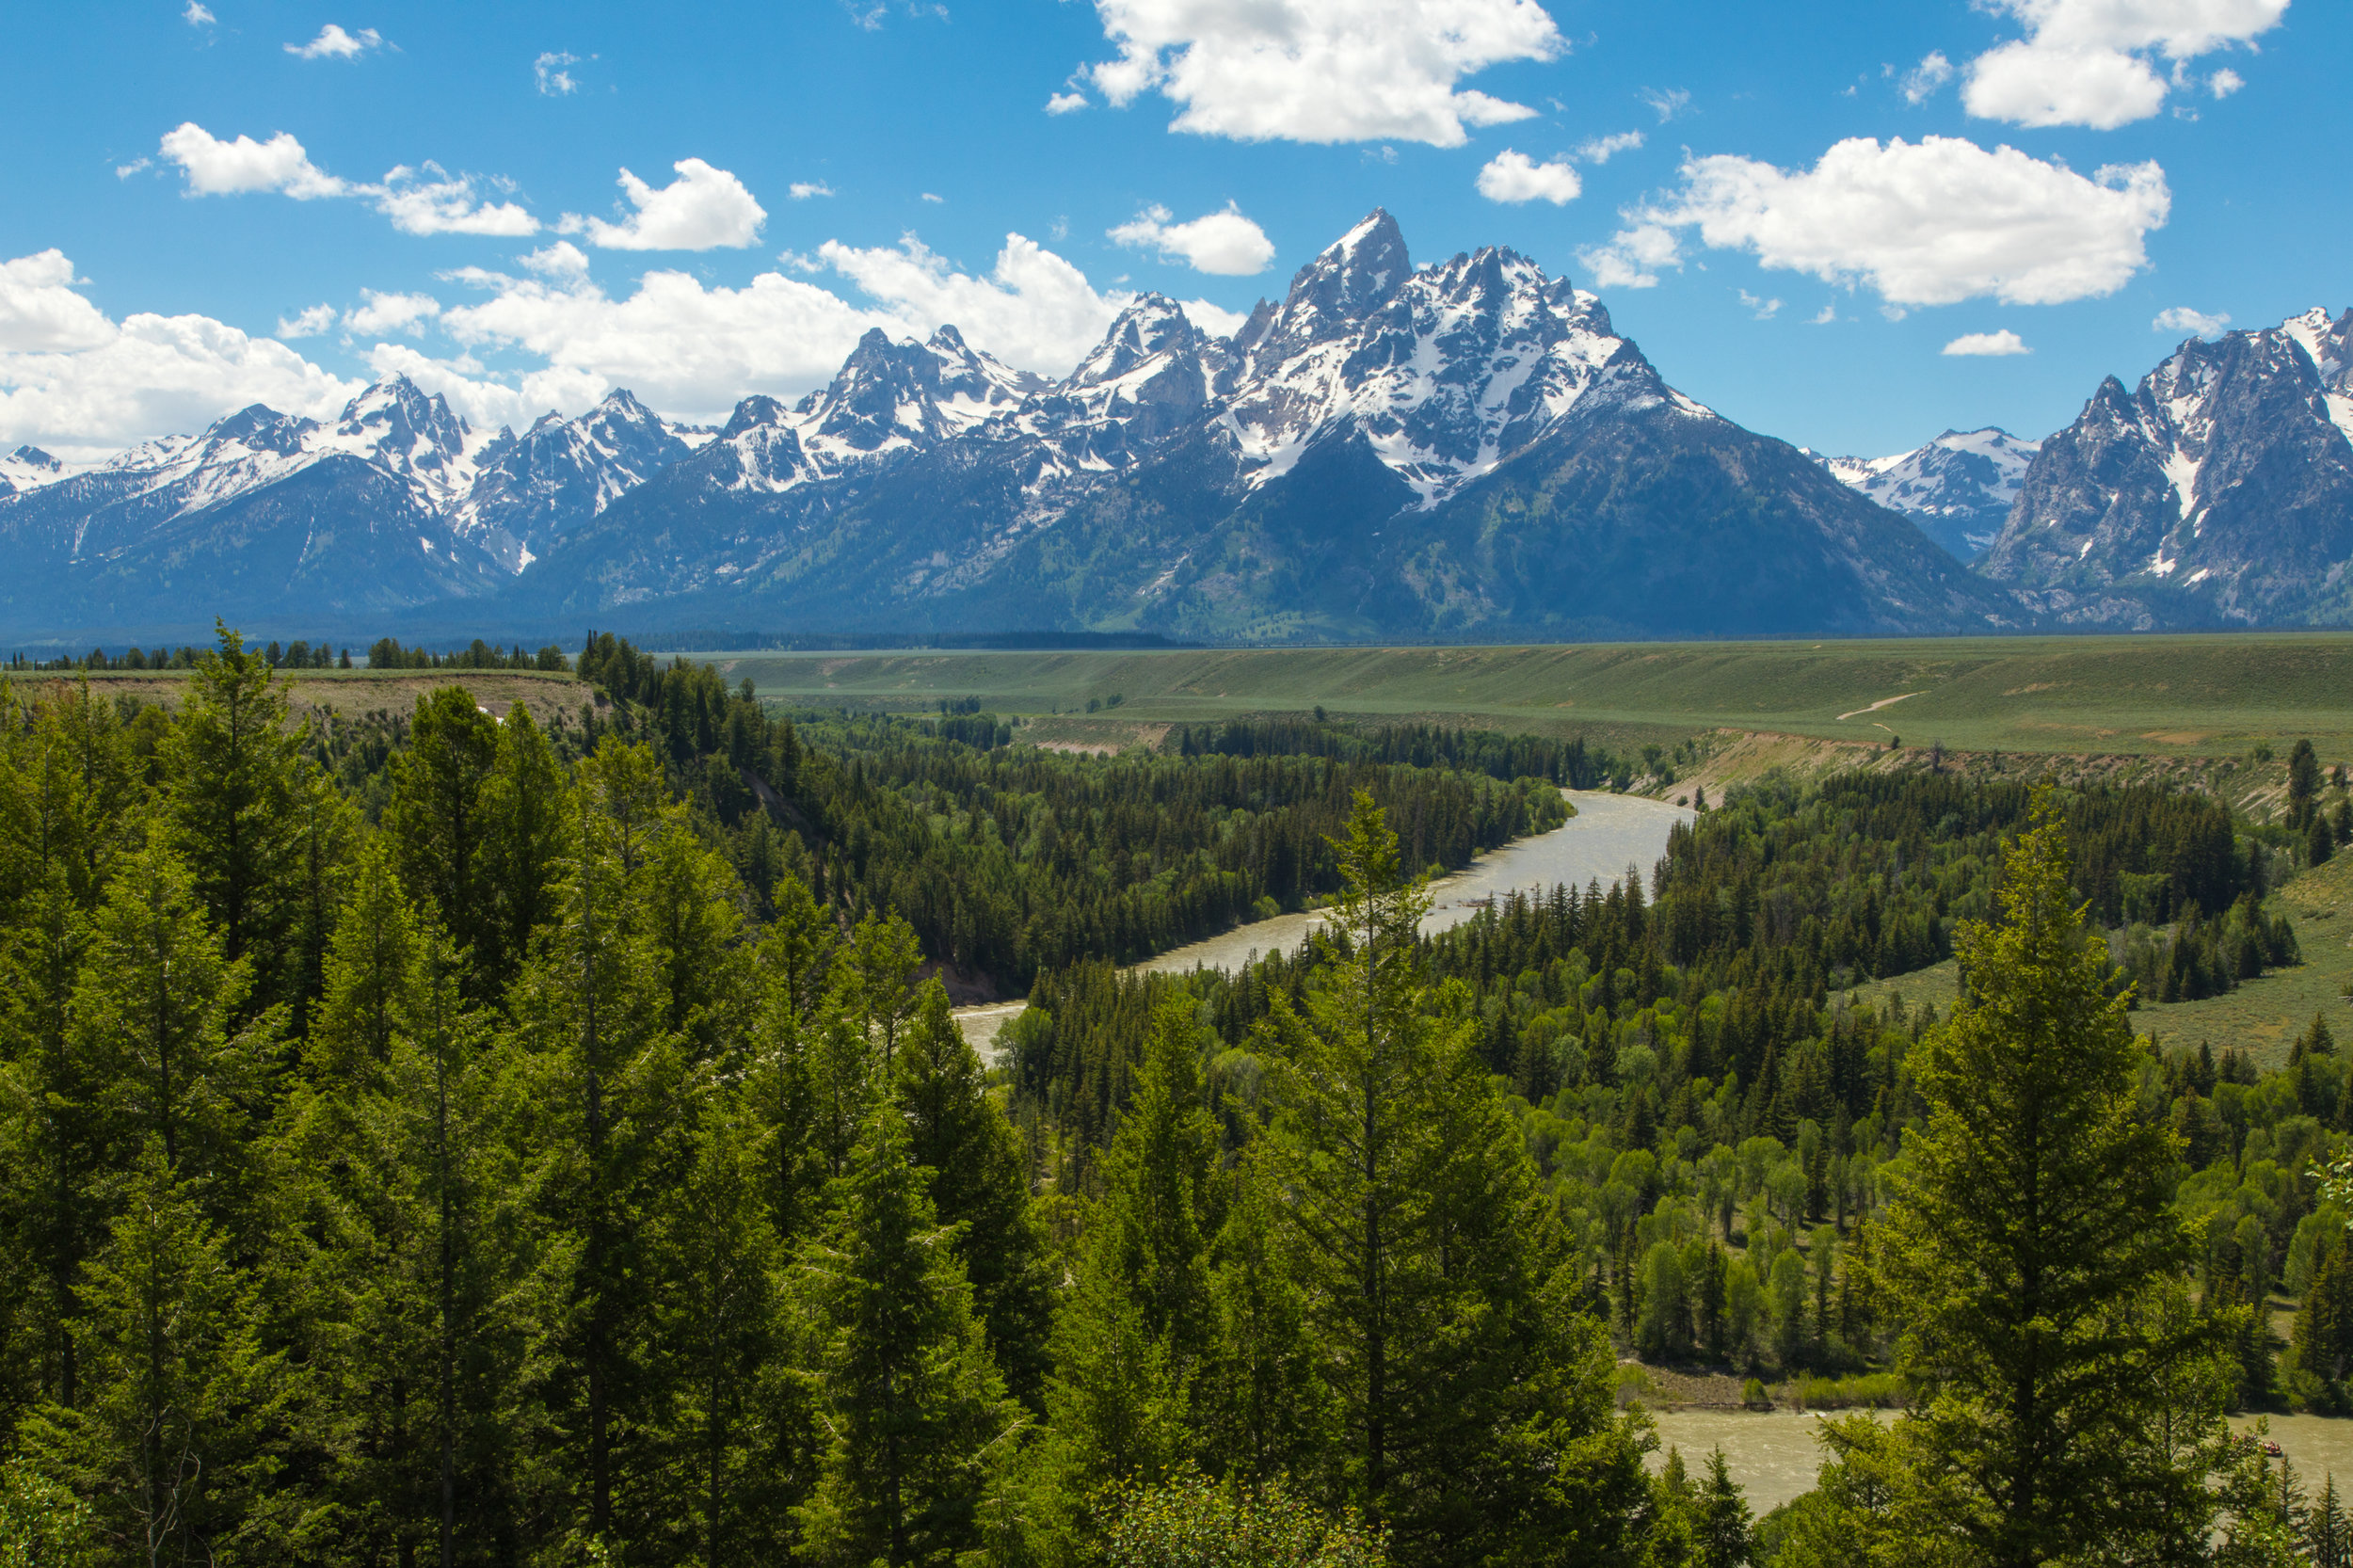 SNAKE RIVER OVERLOOK, IMAGE # 8471